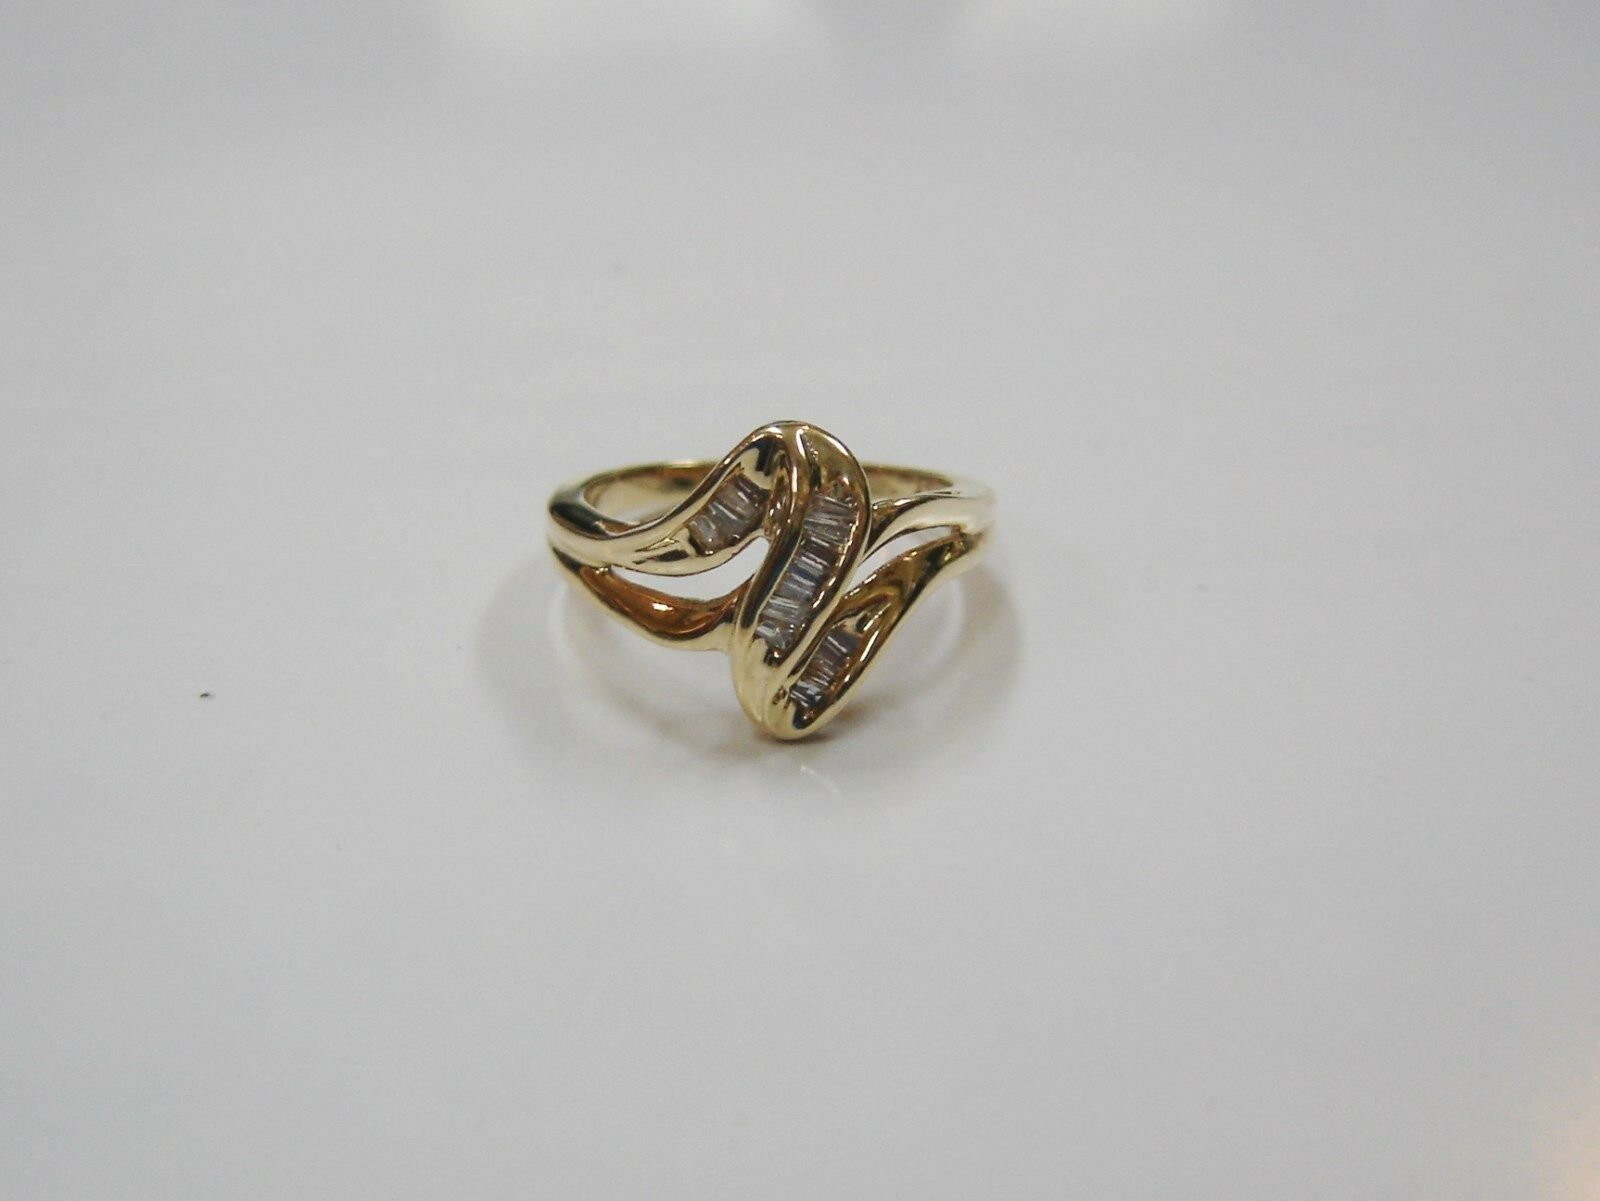 10k Yellow gold Ladies Ring w  Baguette Diamonds   Sz 7.25   G54-M